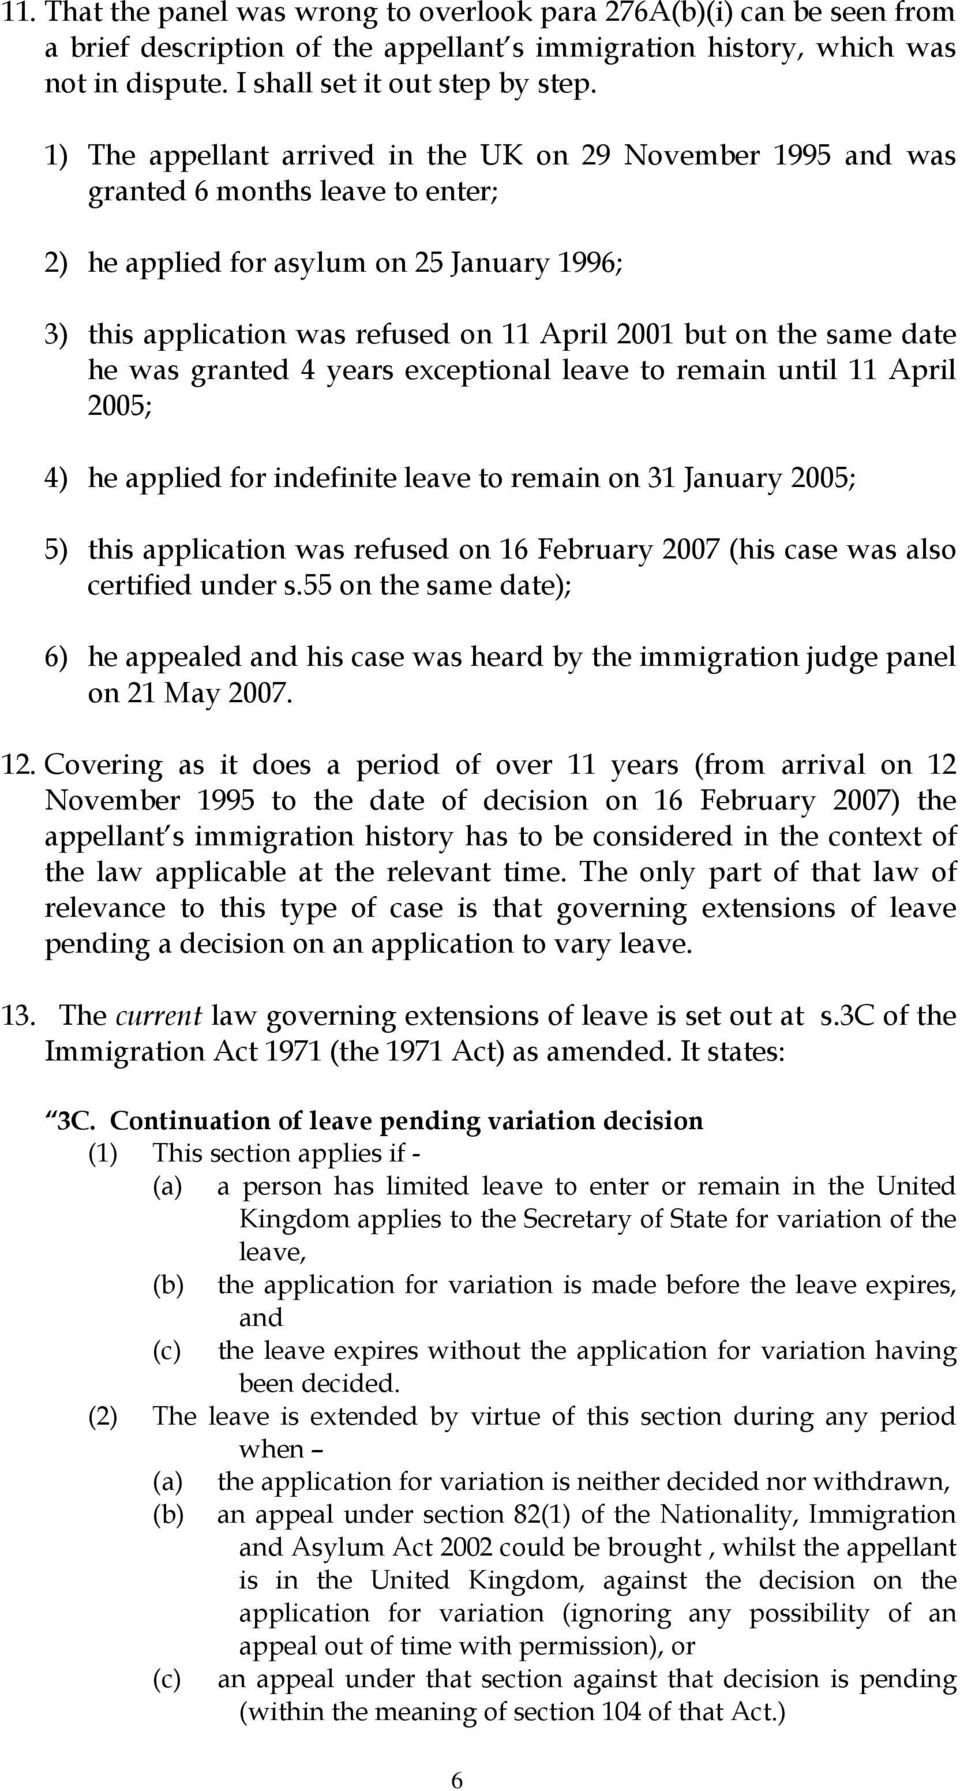 the same date he was granted 4 years exceptional leave to remain until 11 April 2005; 4) he applied for indefinite leave to remain on 31 January 2005; 5) this application was refused on 16 February